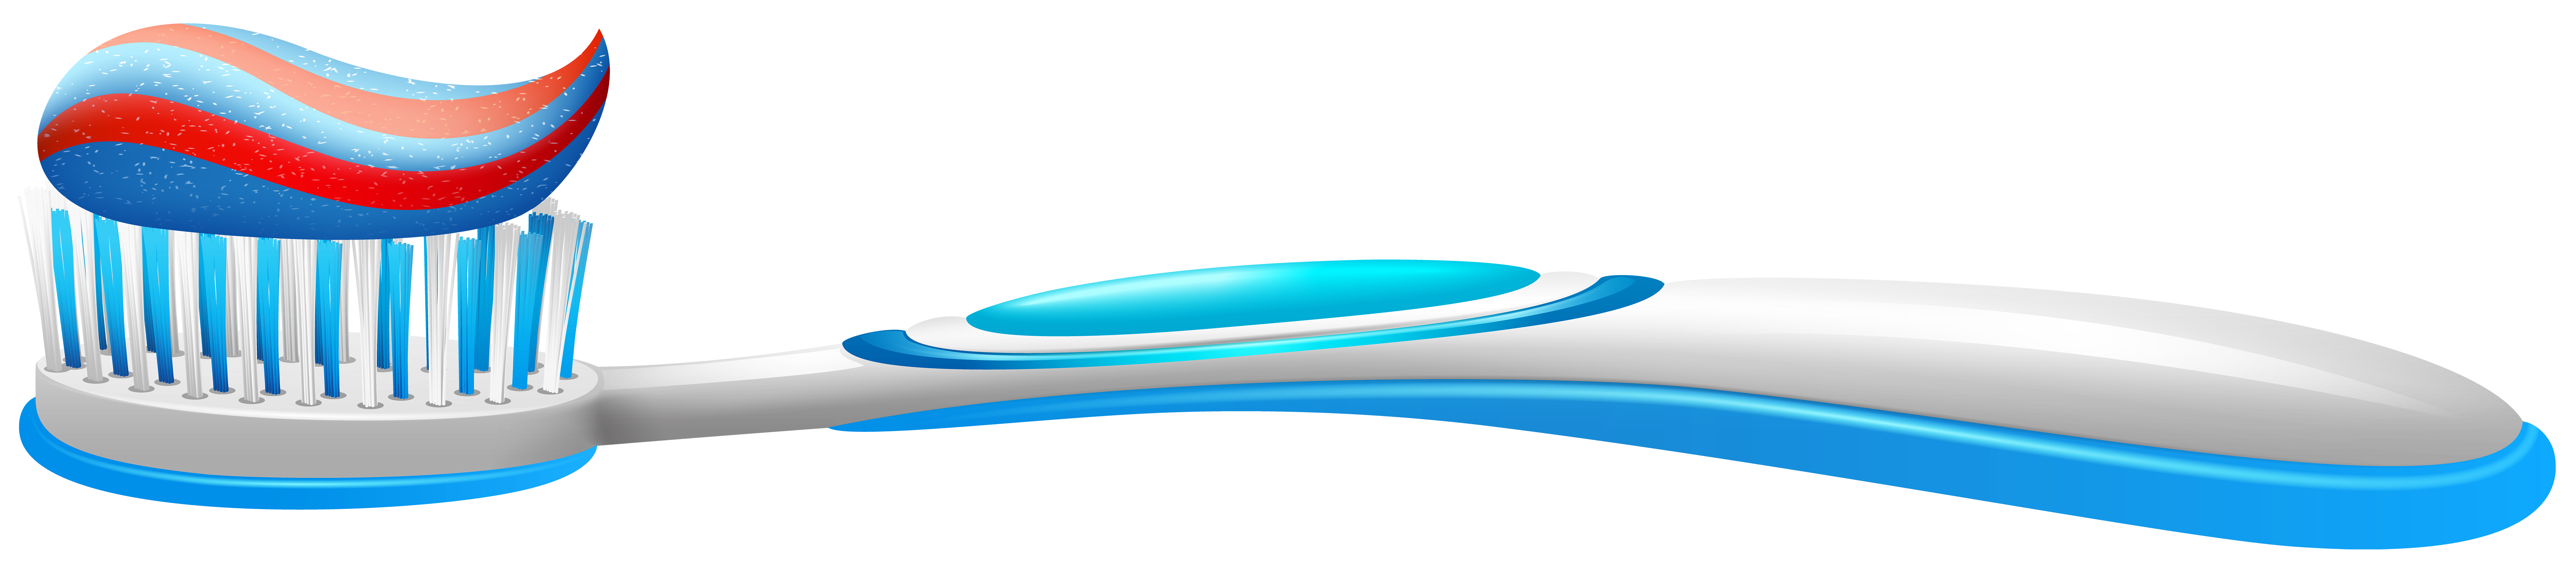 Toothpaste clipart tootbrush. Toothbrush with png clip